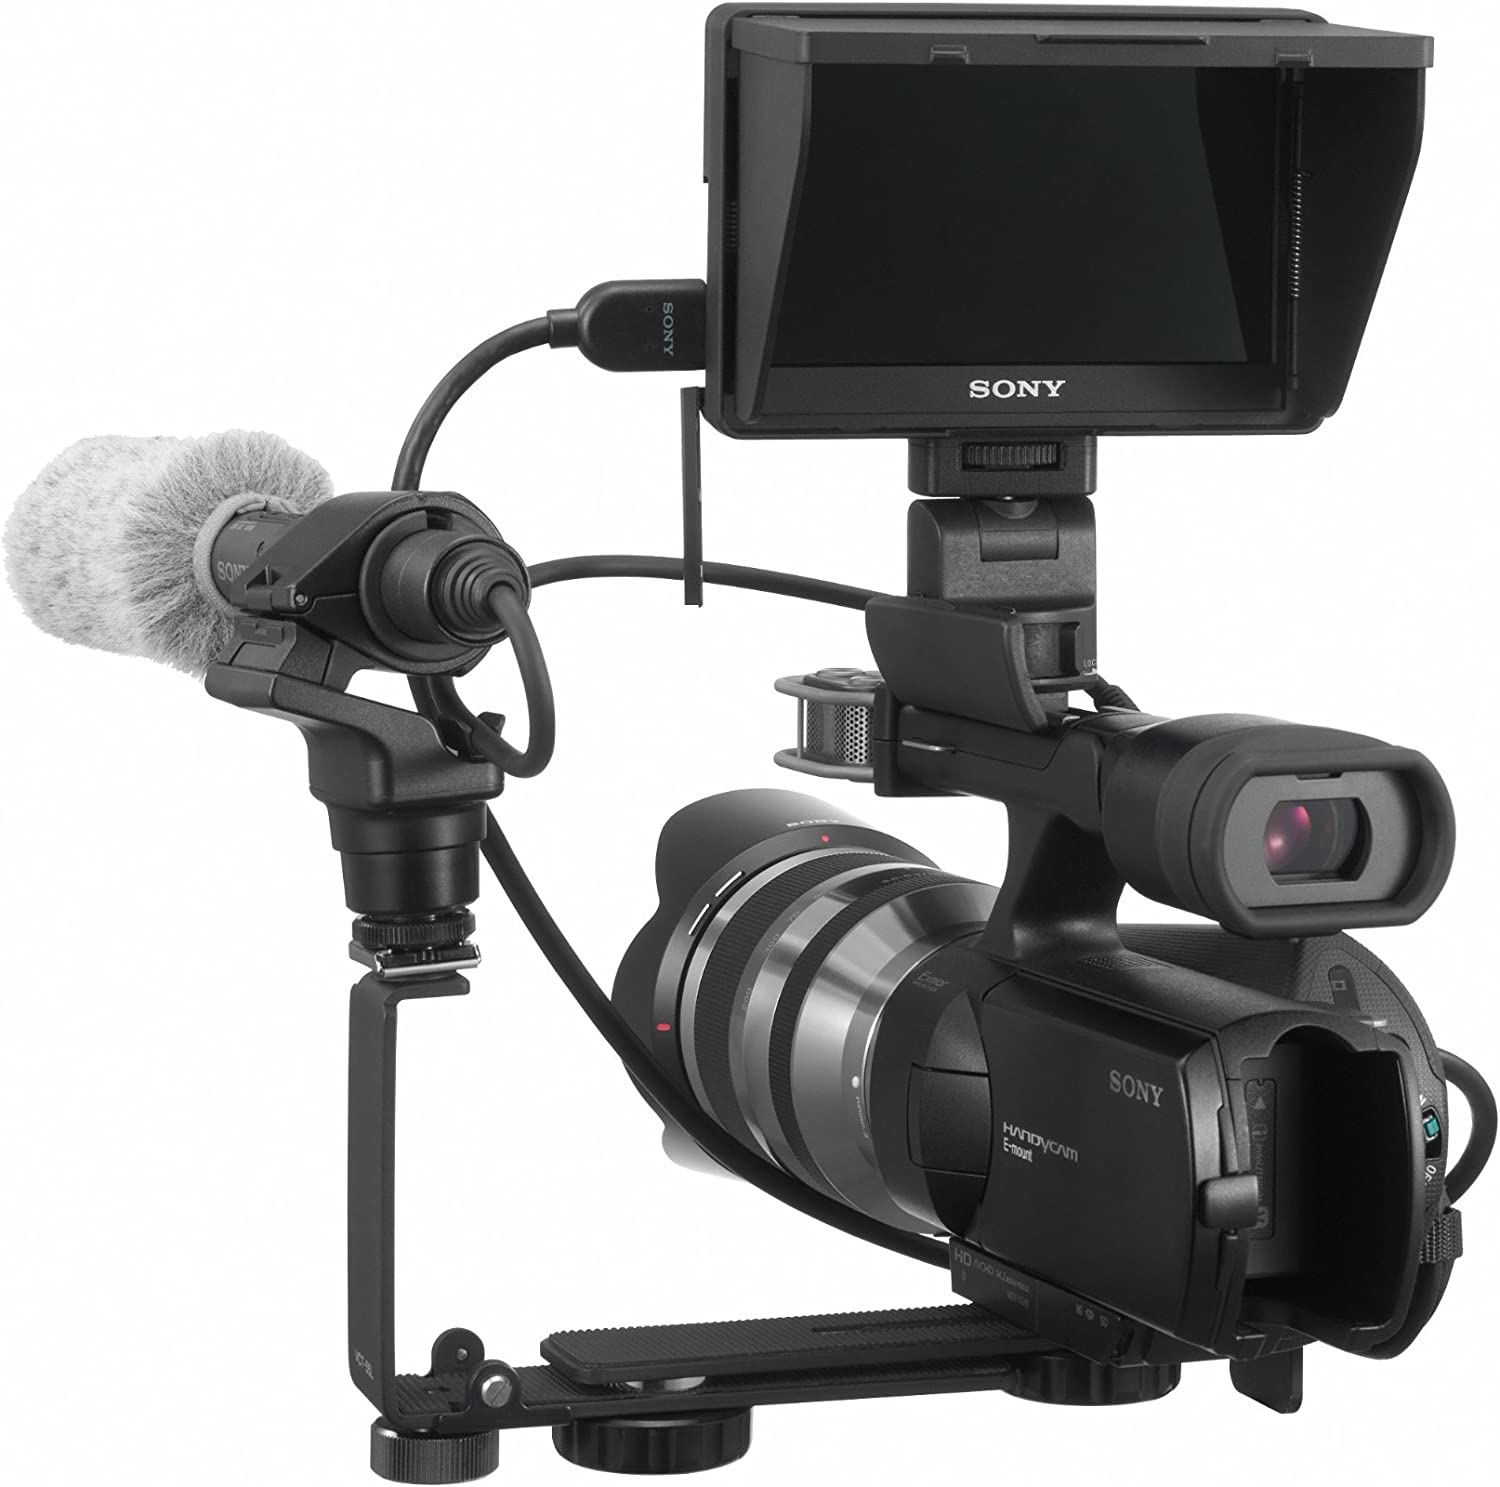 Sony CLM-V55 5-Inch Portable LCD Monitor for DSLR cameras